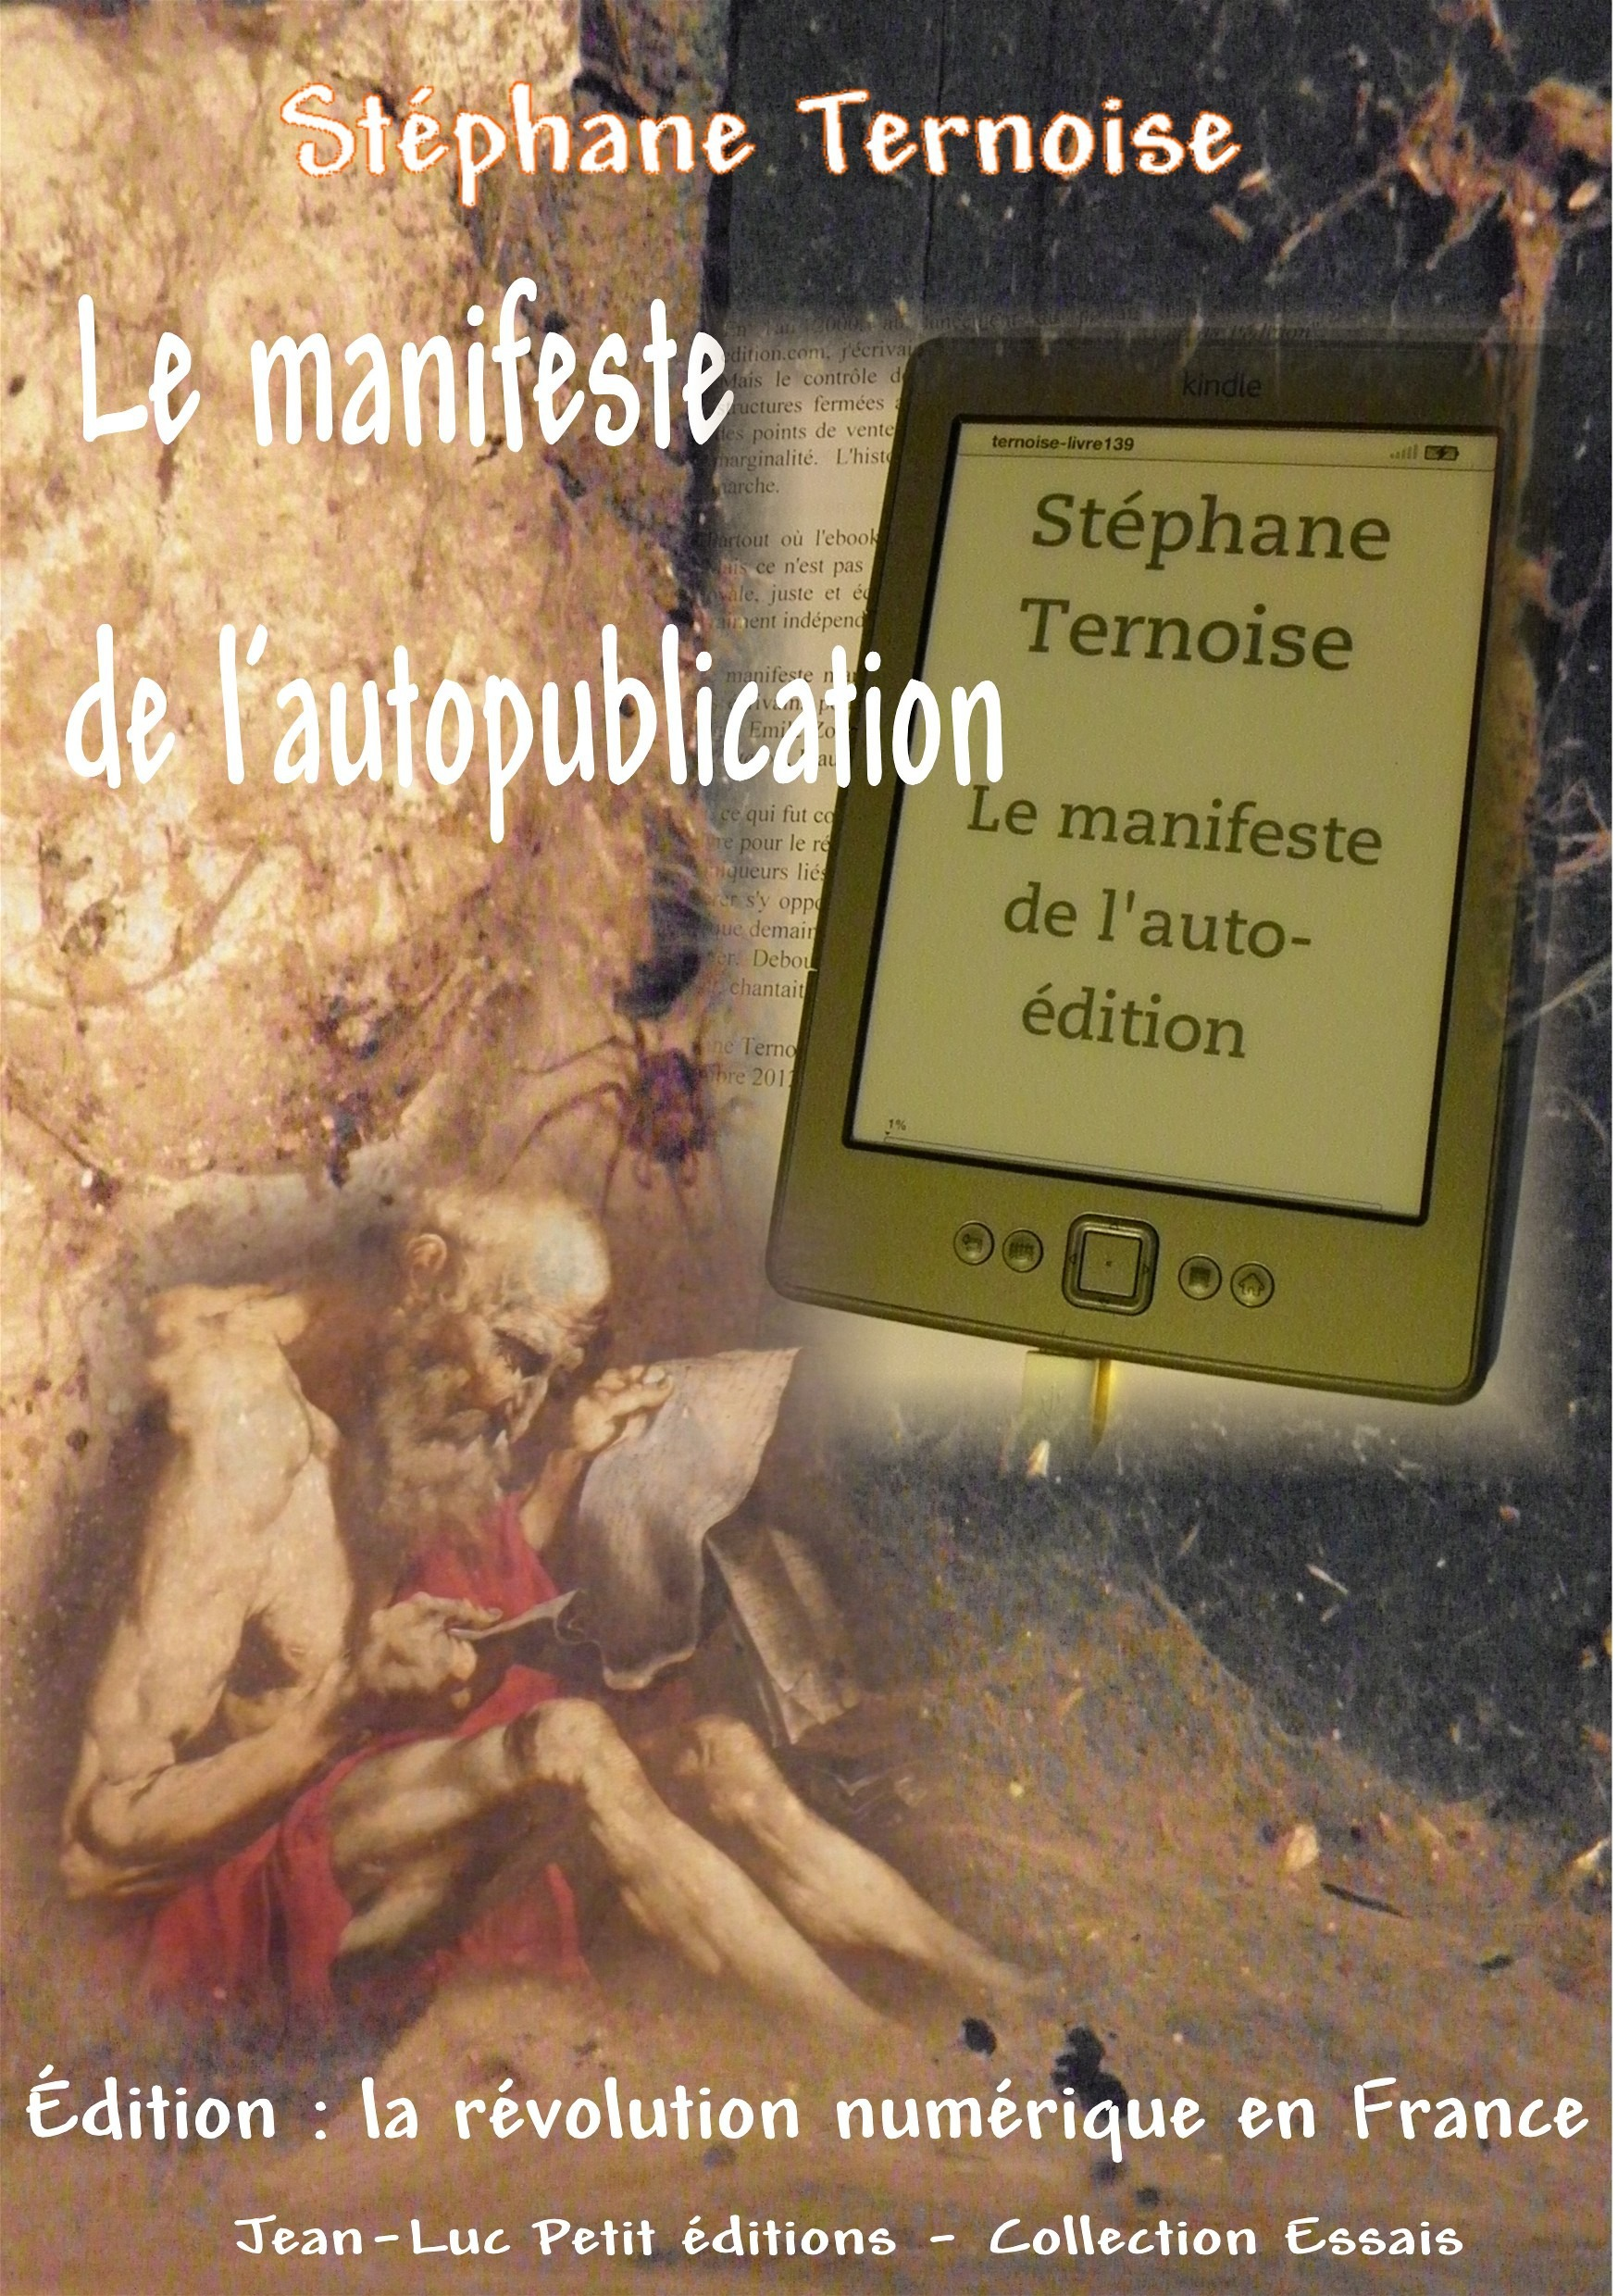 Le manifeste de l'autopublication